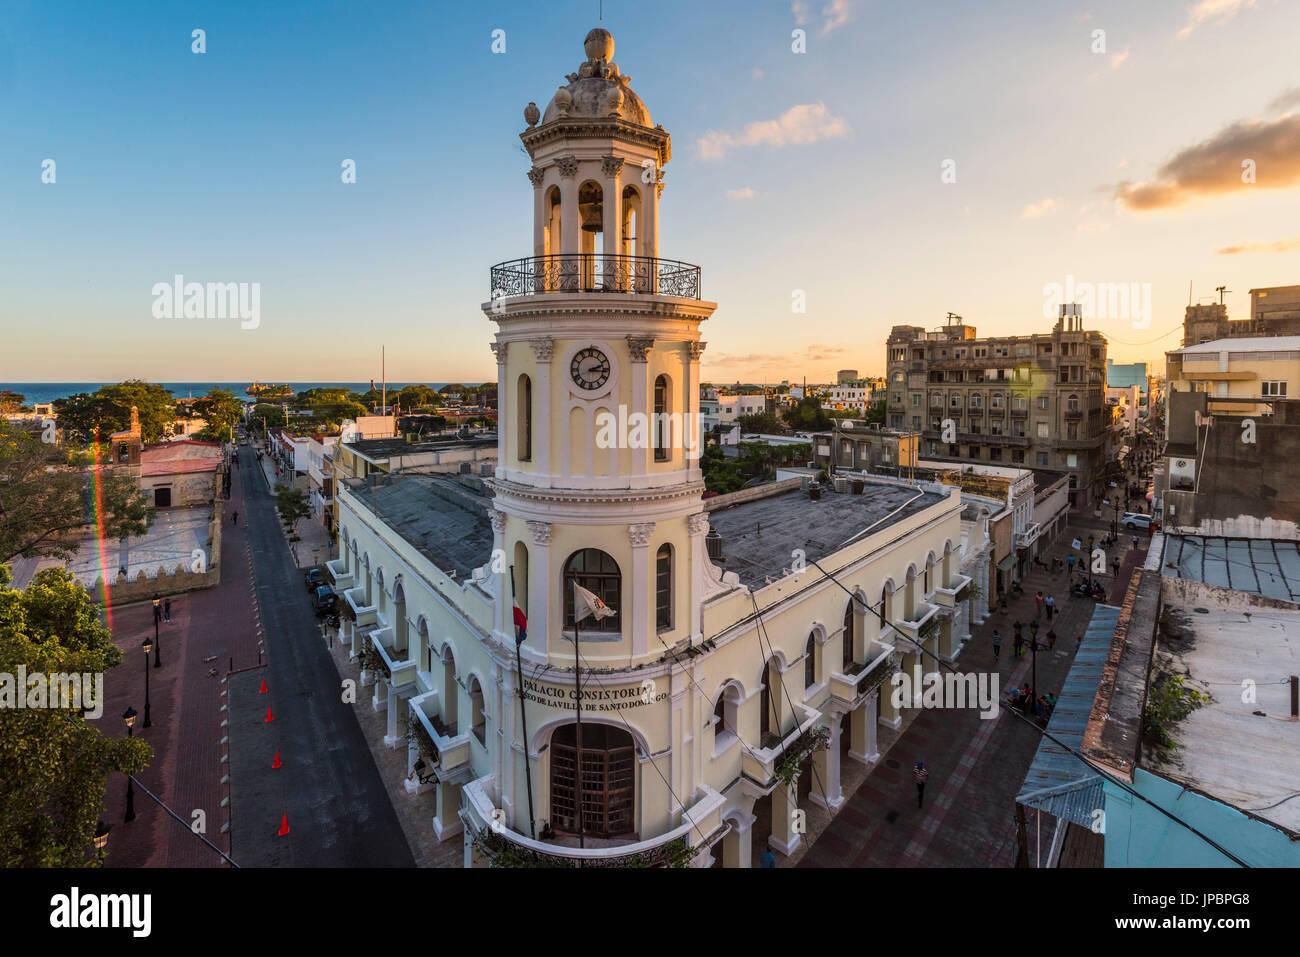 Colonial Zone (Ciudad Colonial), Santo Domingo, Dominican Republic. The Colonial architectures of the Palacio Consistorial. - Stock Image